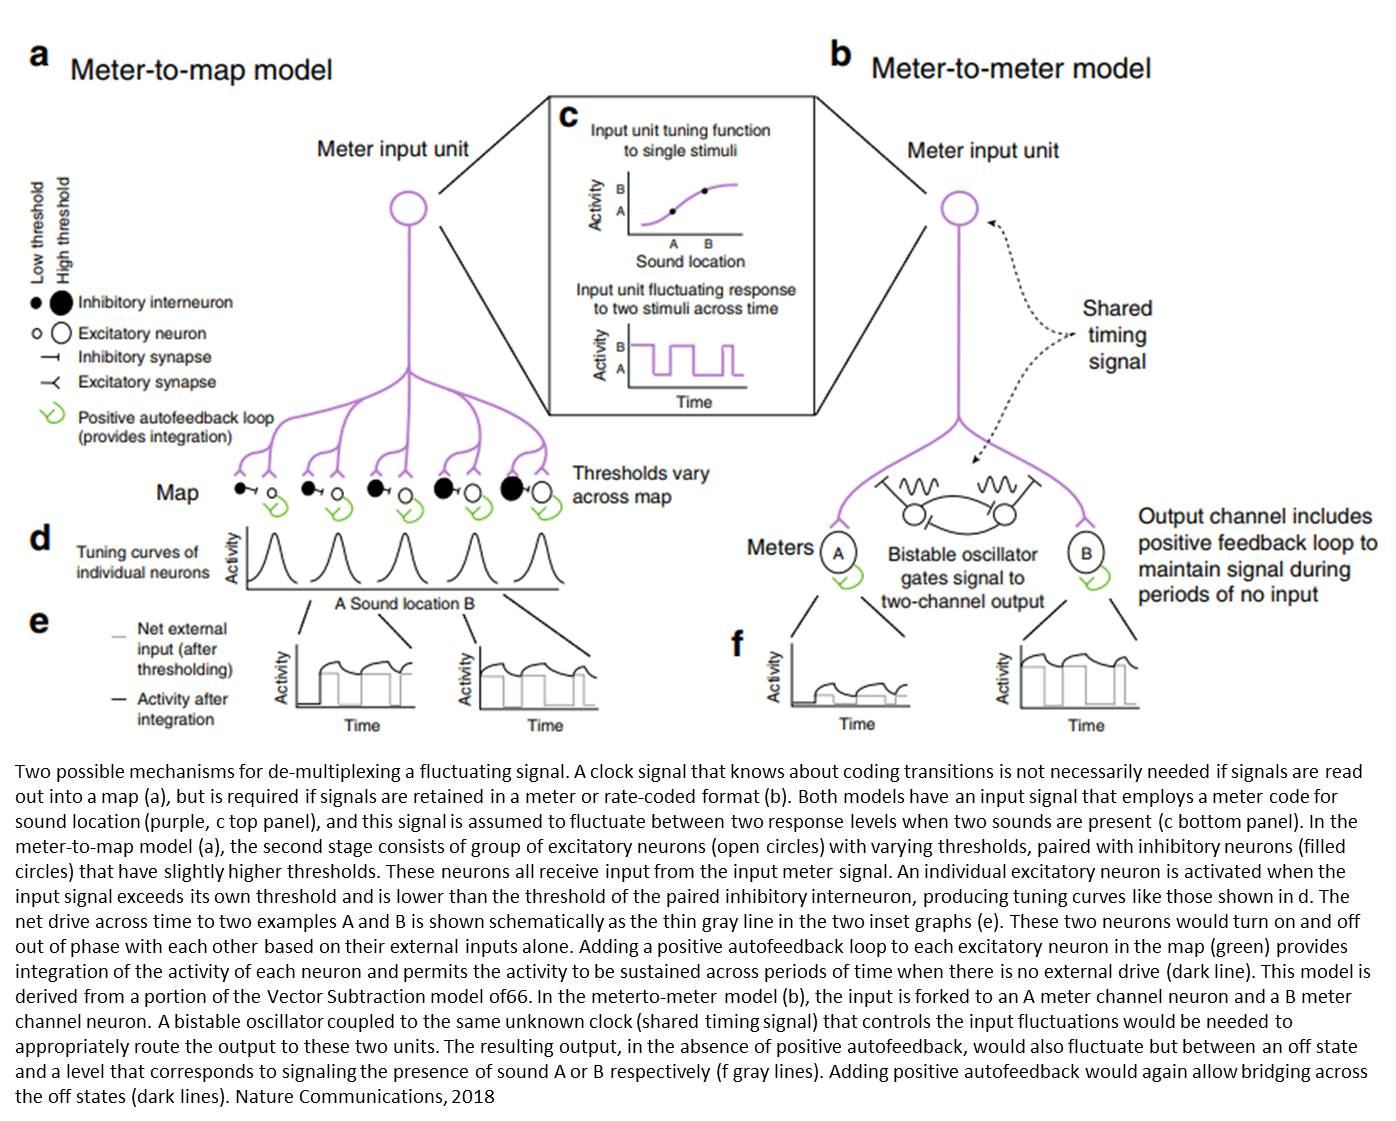 Neurons can transmit multiple signals simultaneously